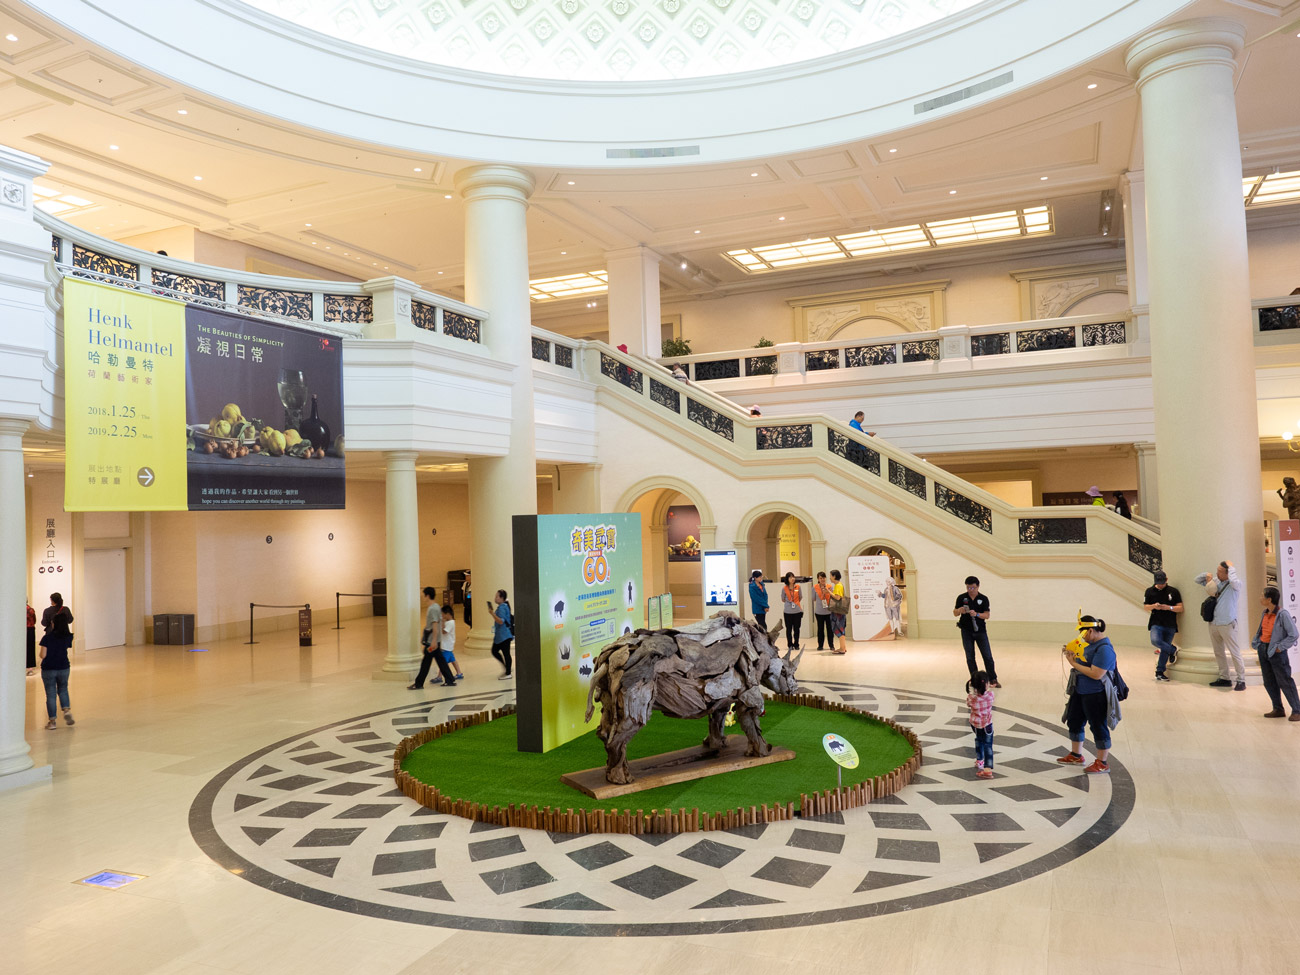 Tainan - Pokemon Go Safari Event - Chimei museum lobby area